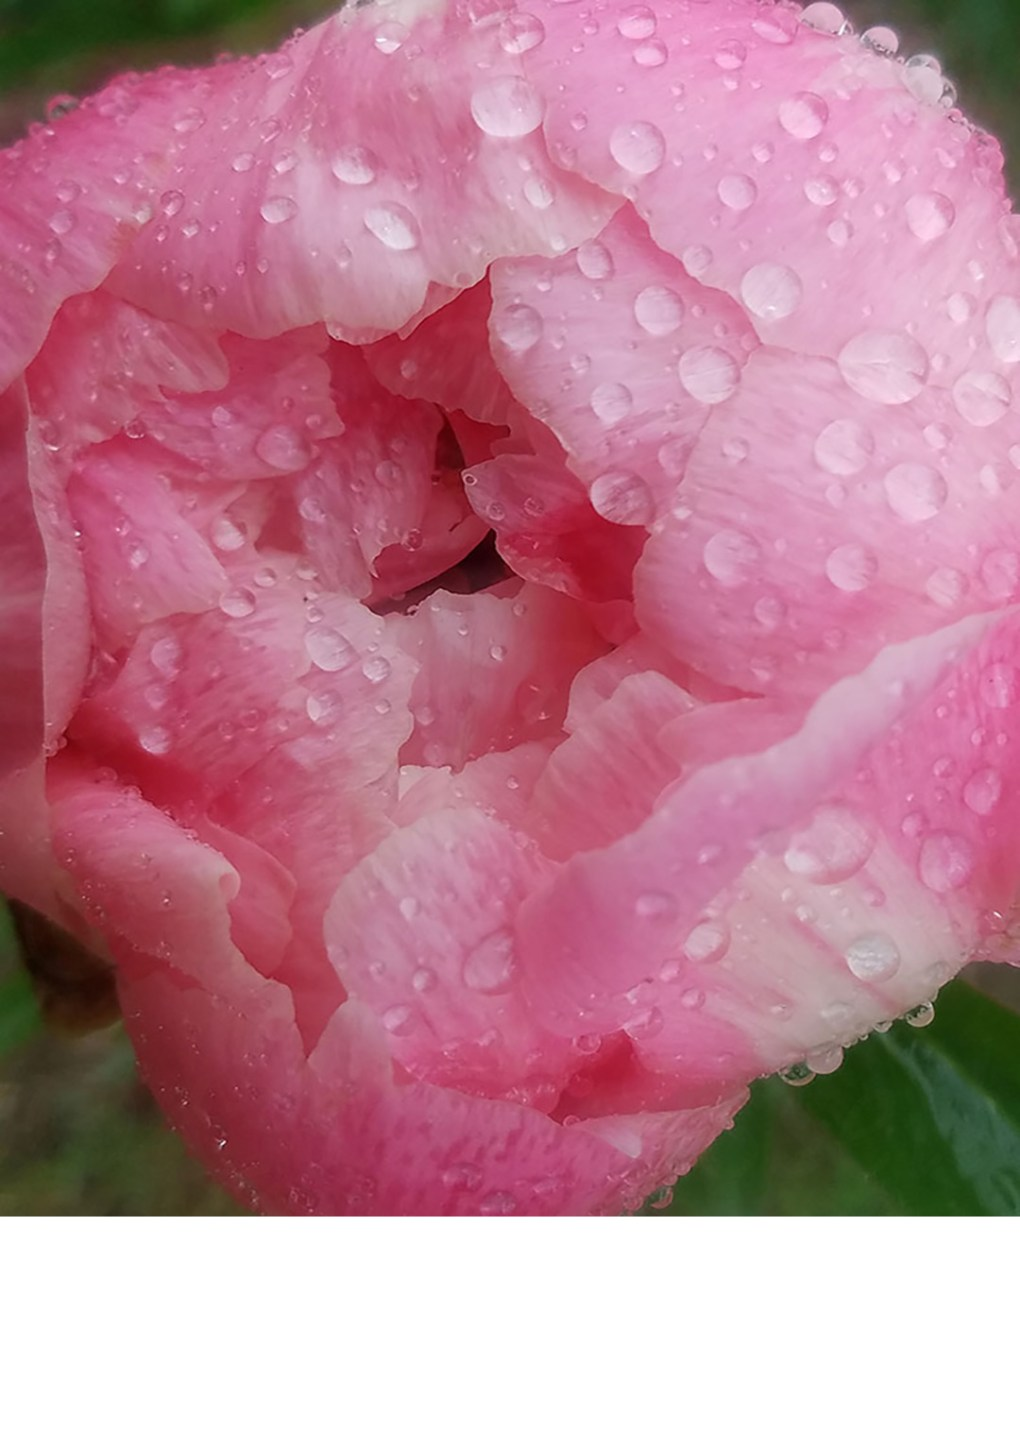 Pink Peony Detail - photograph by Gail Russell